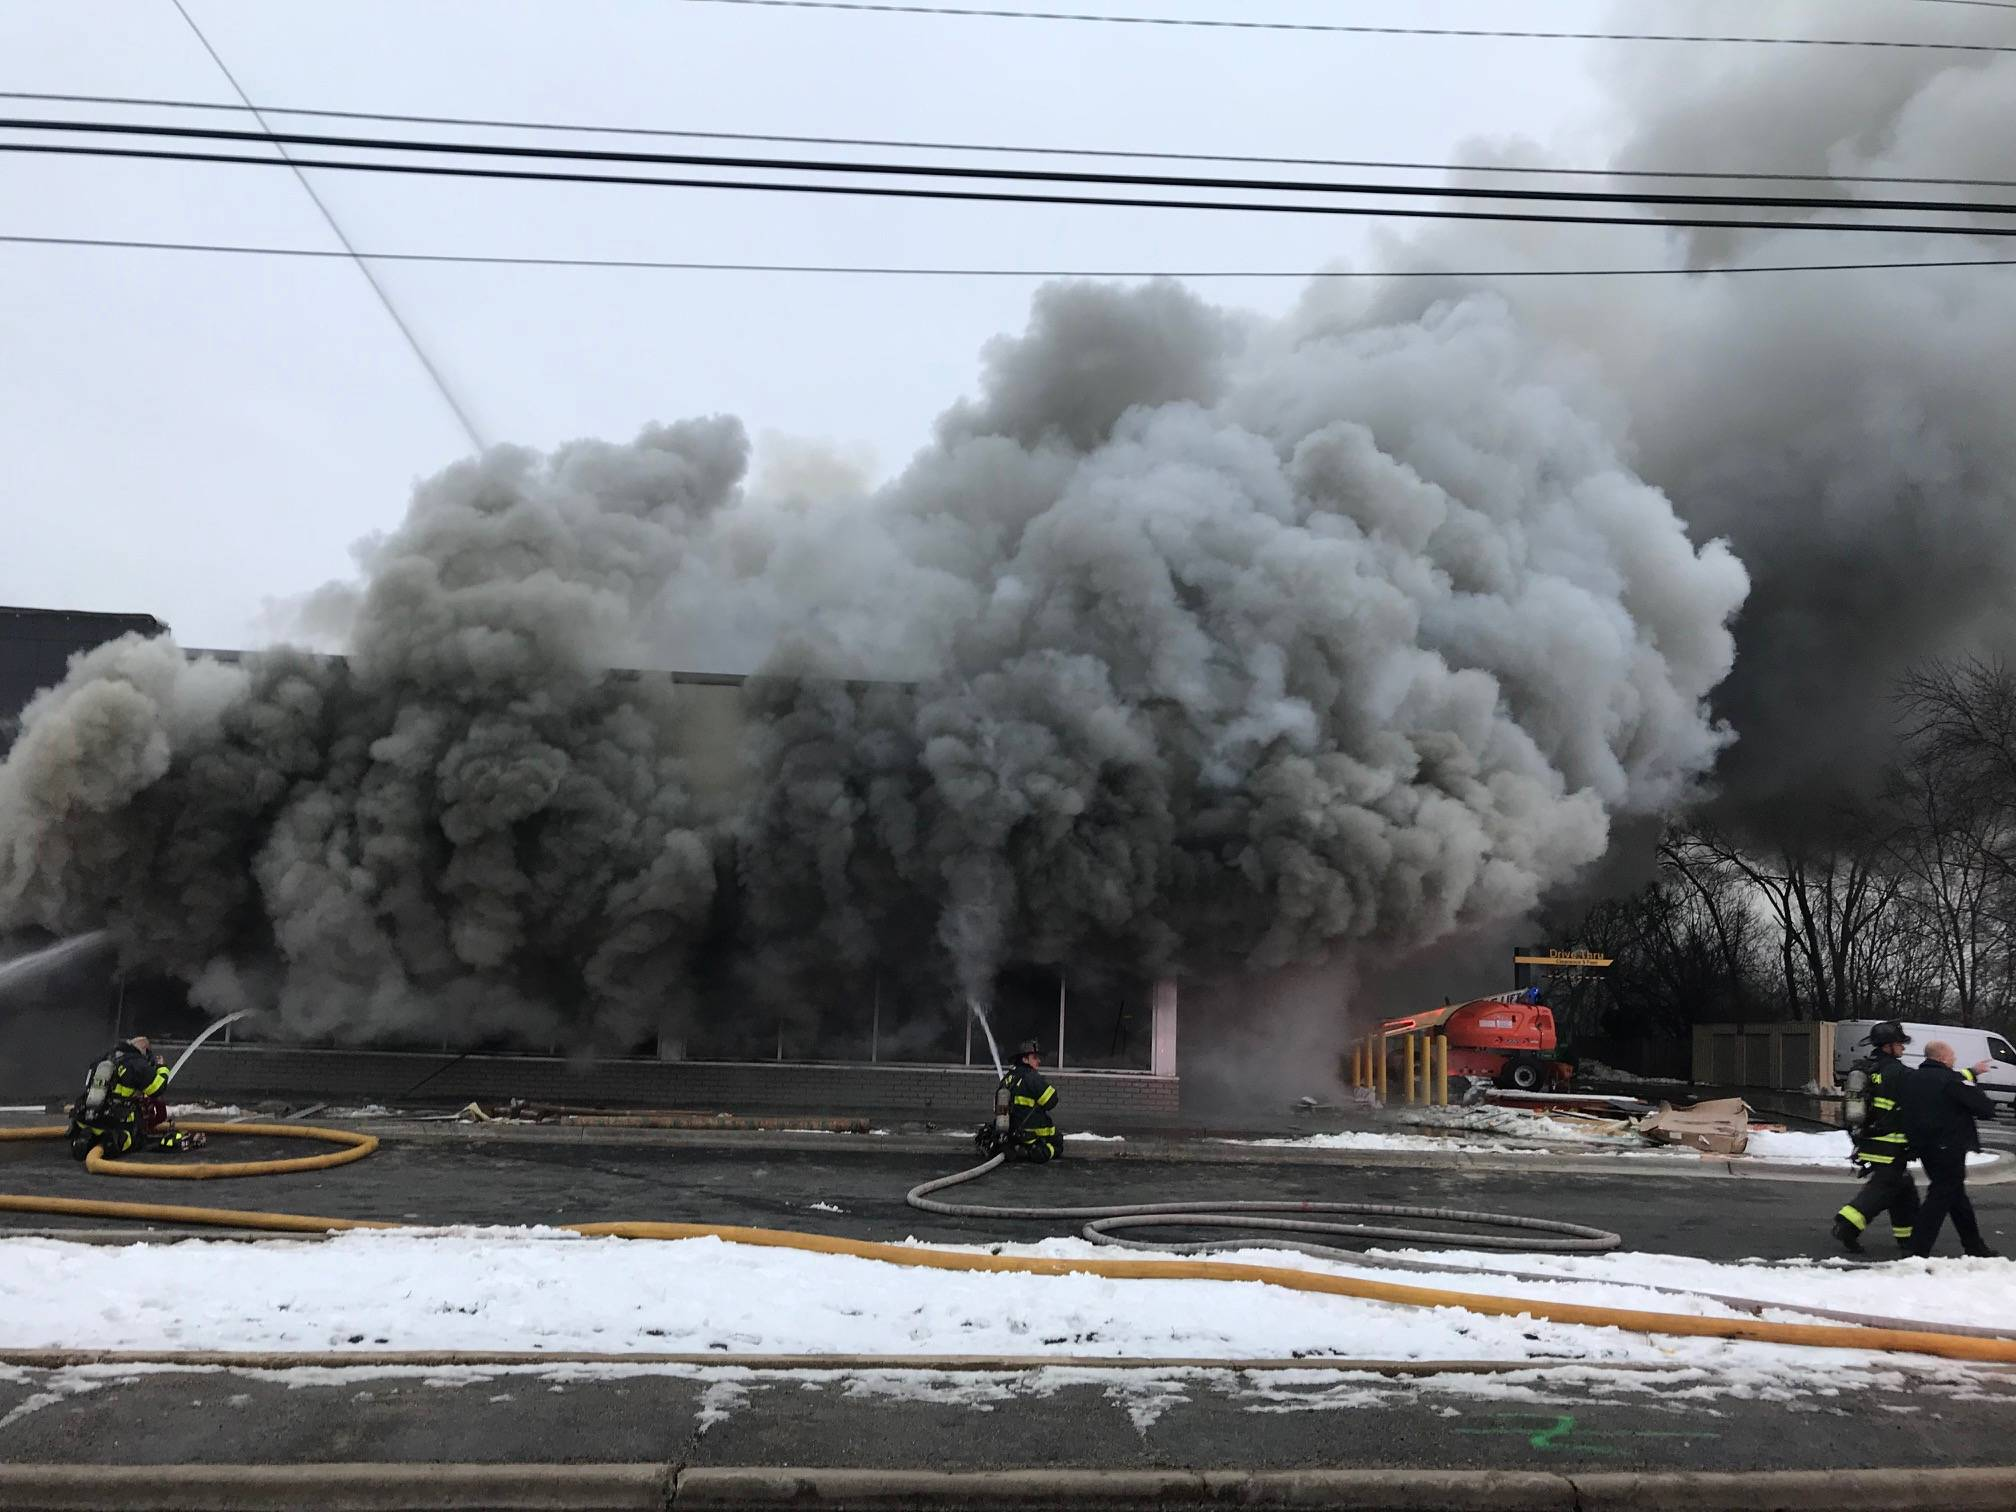 Lake Street was closed in both directions between Indian Trail and Illinois Avenue while firefighters responded to a blaze at a McDonald's under renovation.